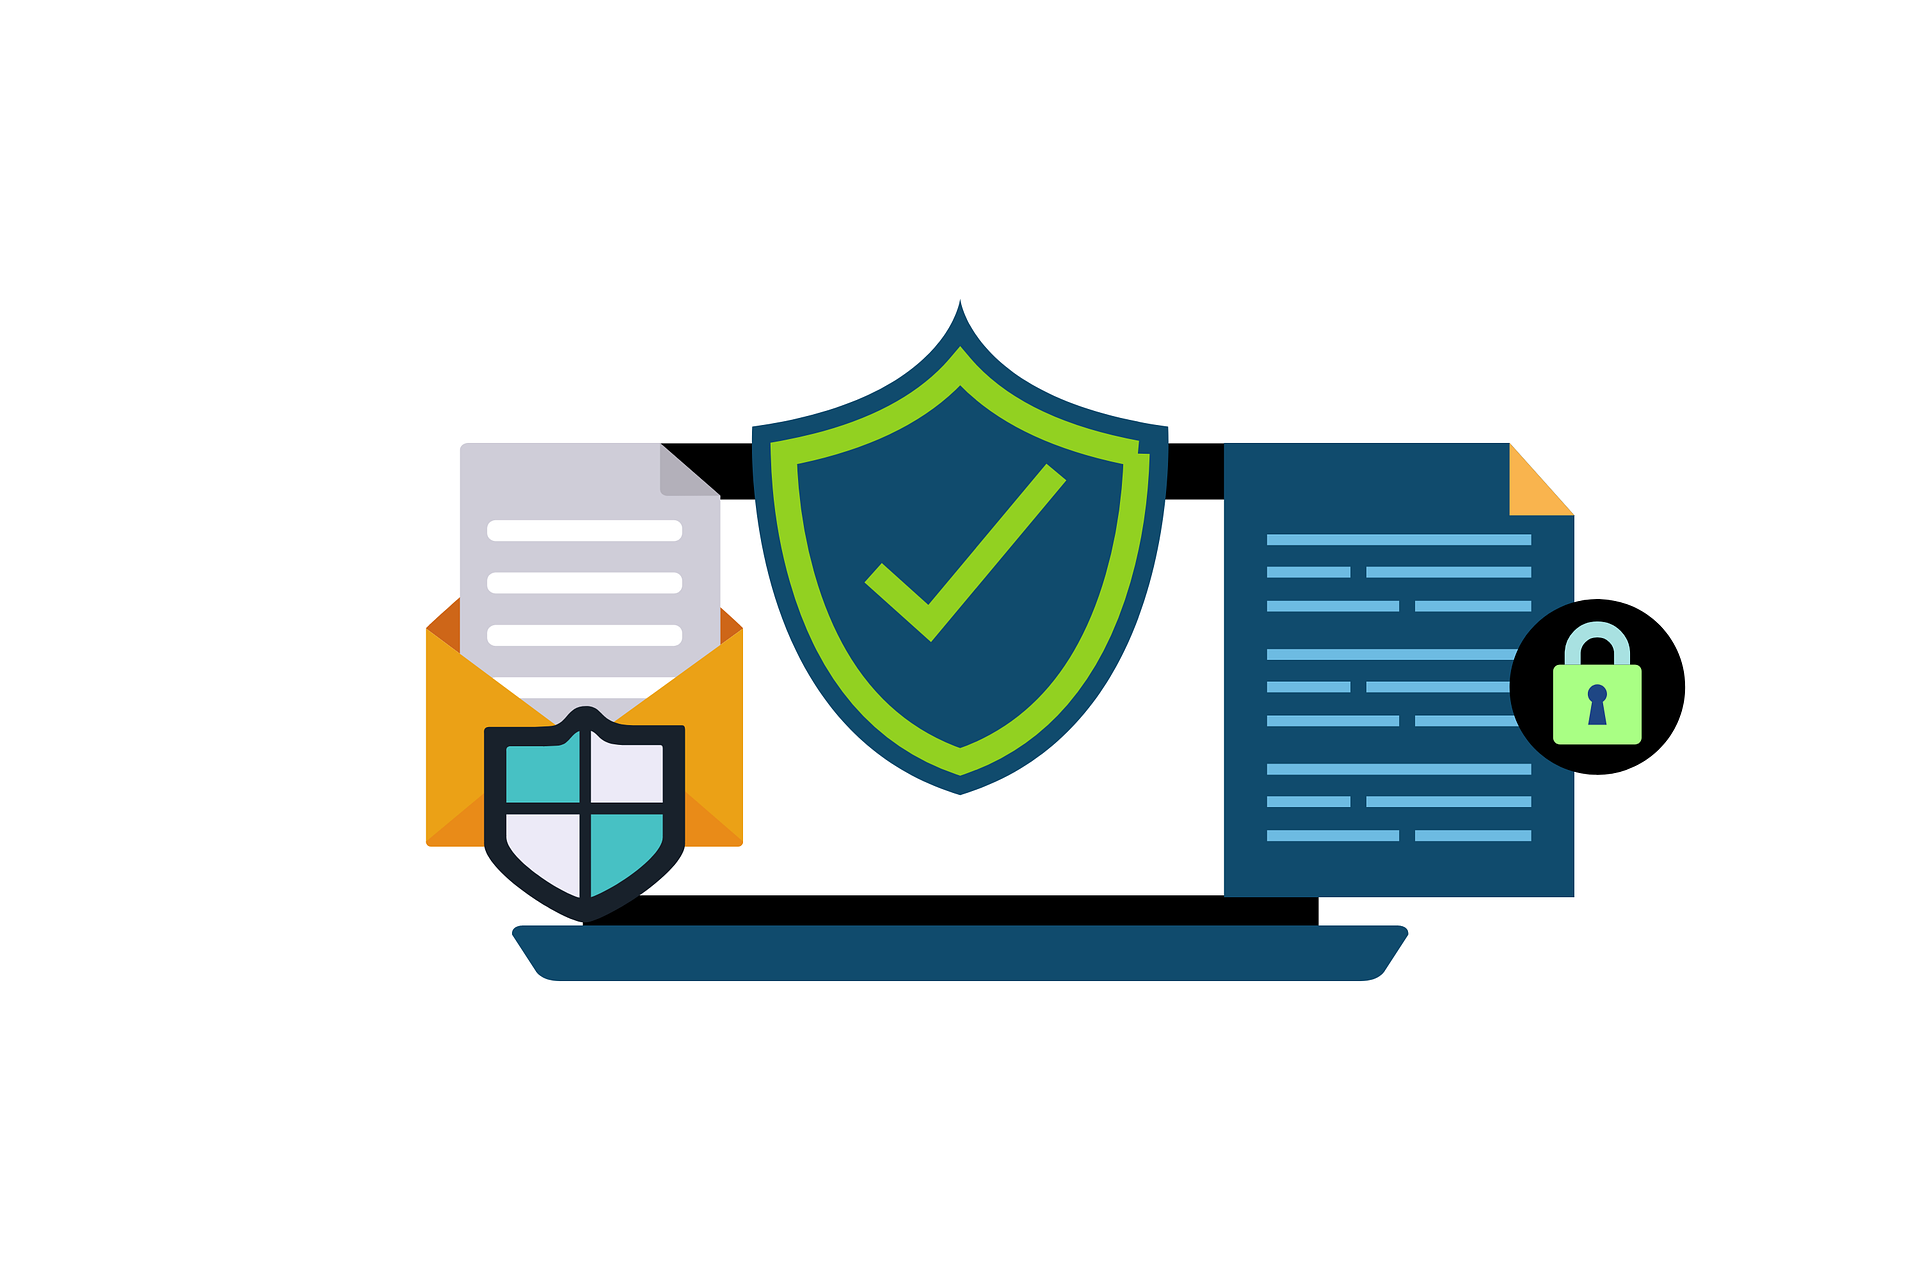 infographic with computer mockup and many security and encryption symbols on documents